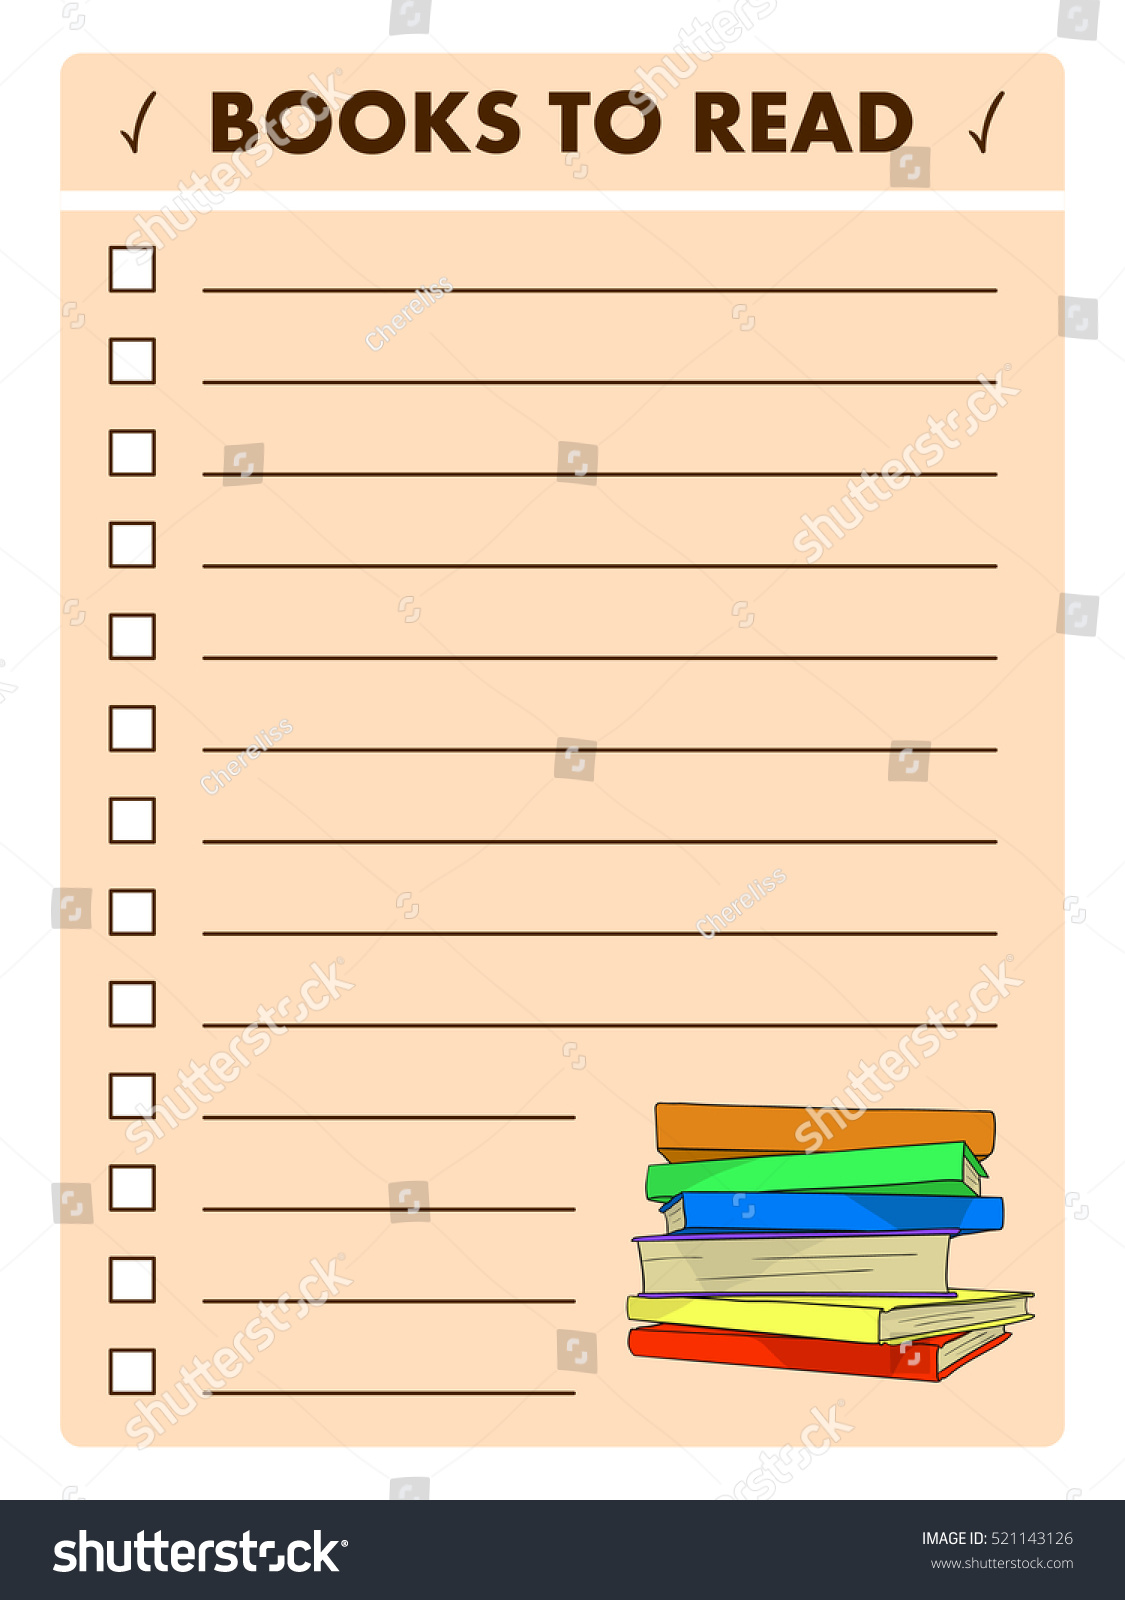 Reading List Template from image.shutterstock.com